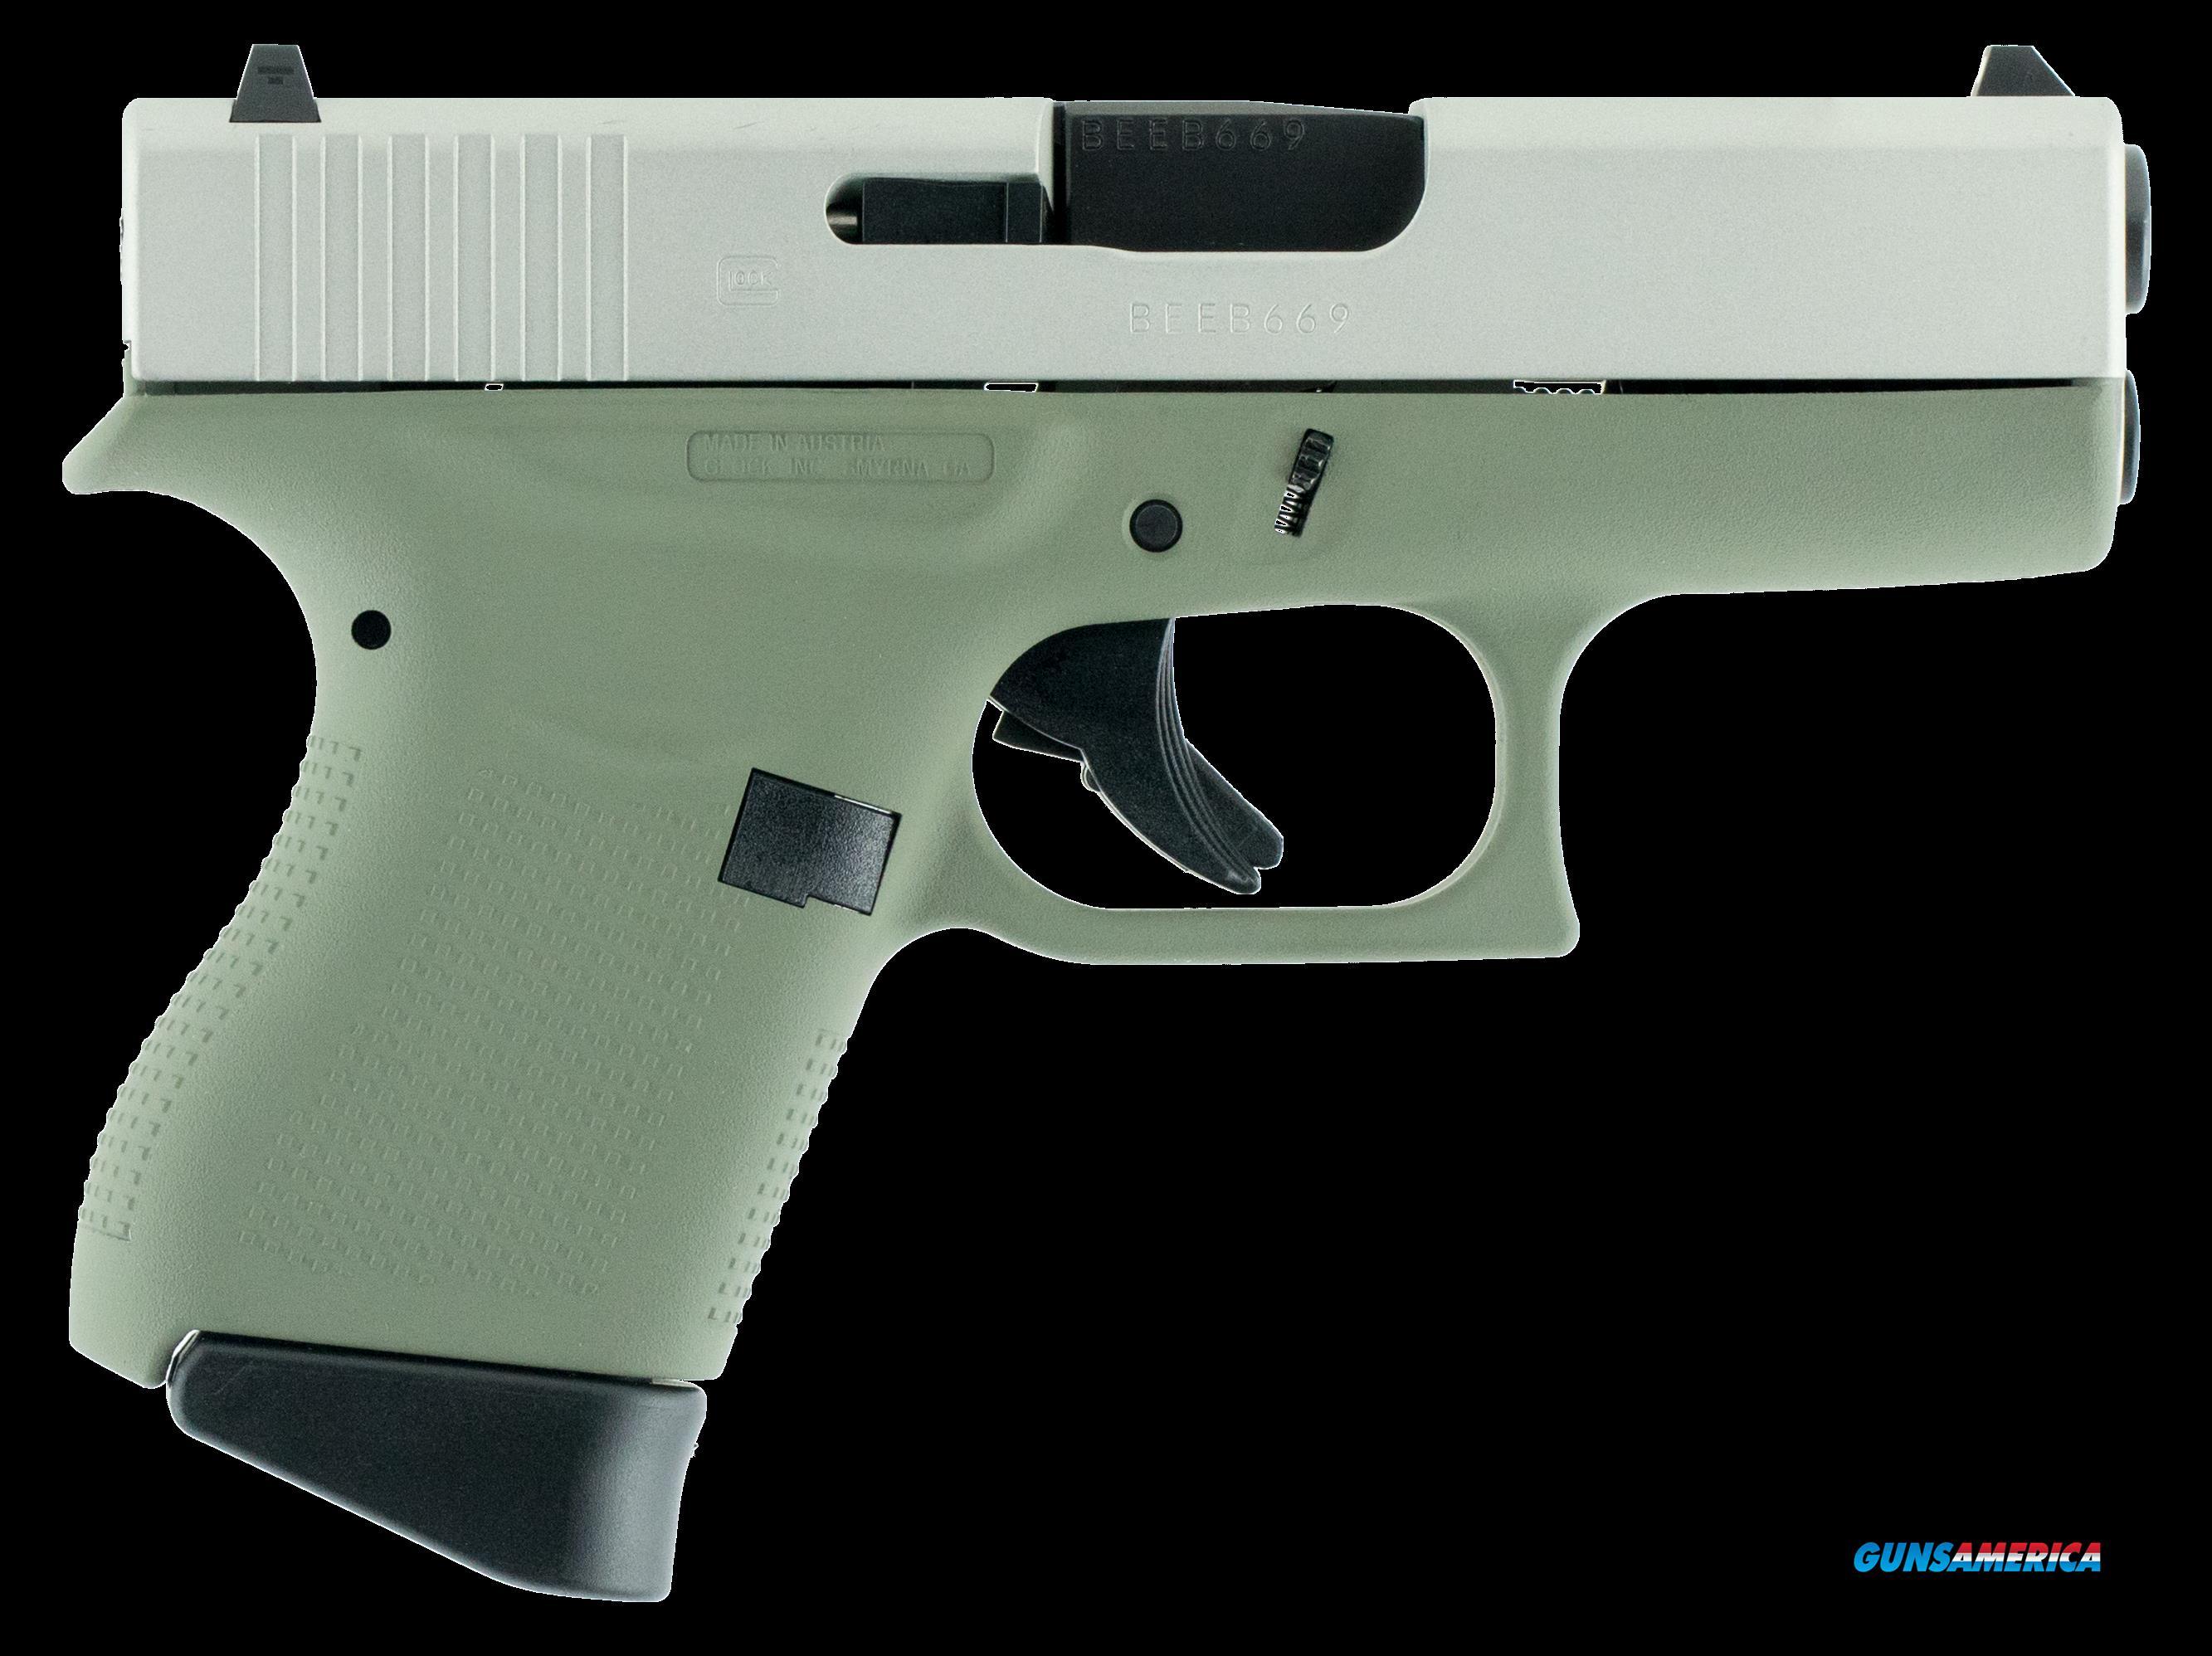 "Glock PI4350201 G43 Subcompact Double 9mm Luger 3.39"" 6+1 Forest Green Polymer Grip/Frame Grip  Guns > Pistols > G Misc Pistols"